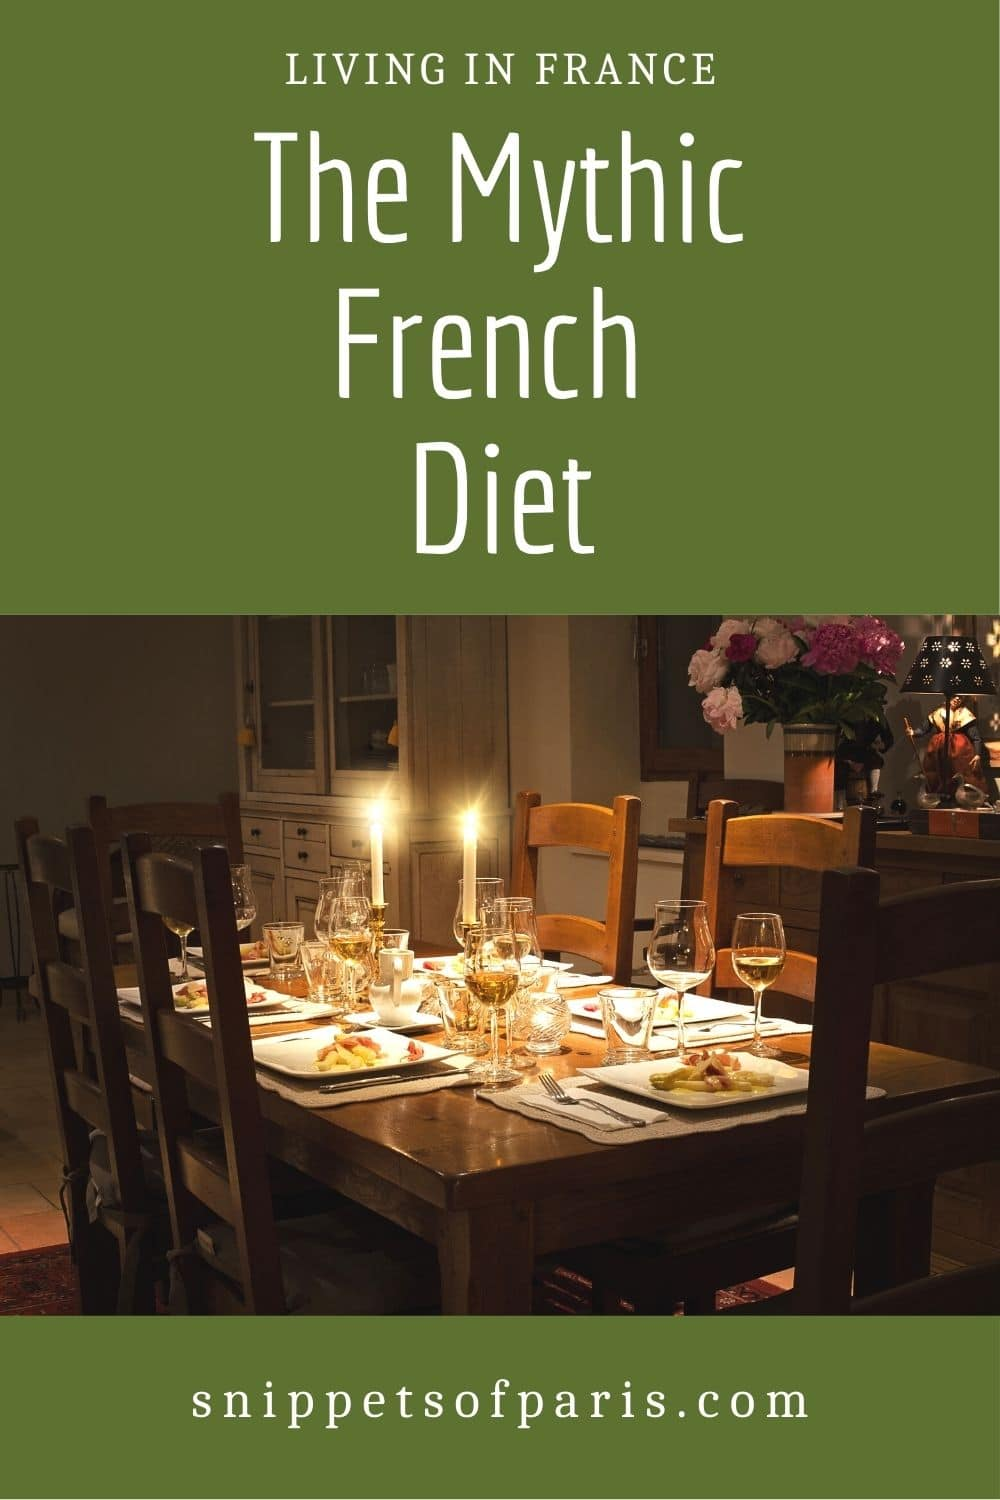 French Diet Myths: 14 Real tips from French Women to stay slim